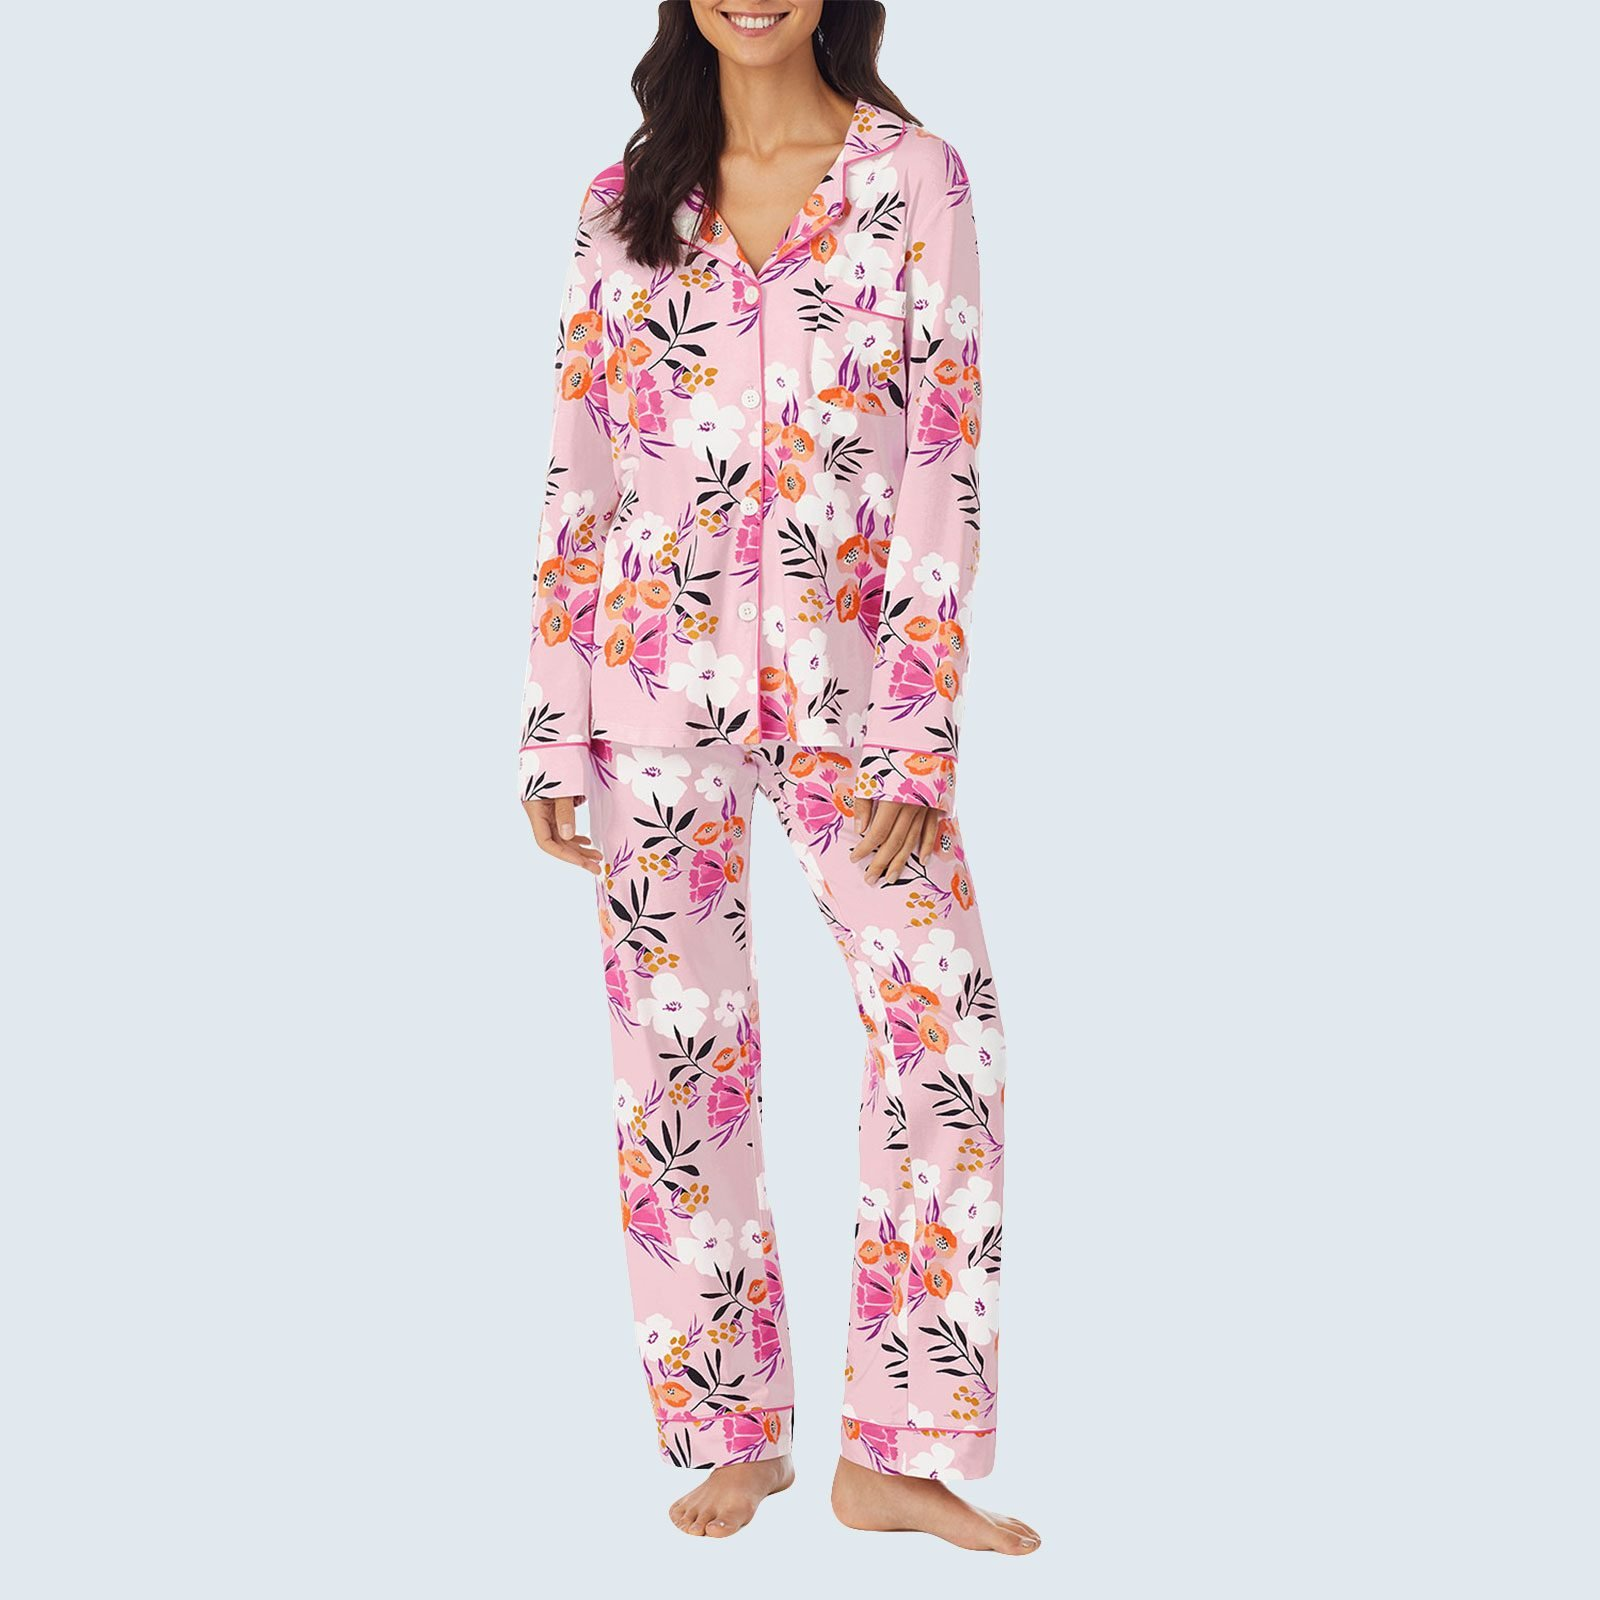 Charlotte Blooms Long-Sleeve Pajama Set from Bedhead Pajamas